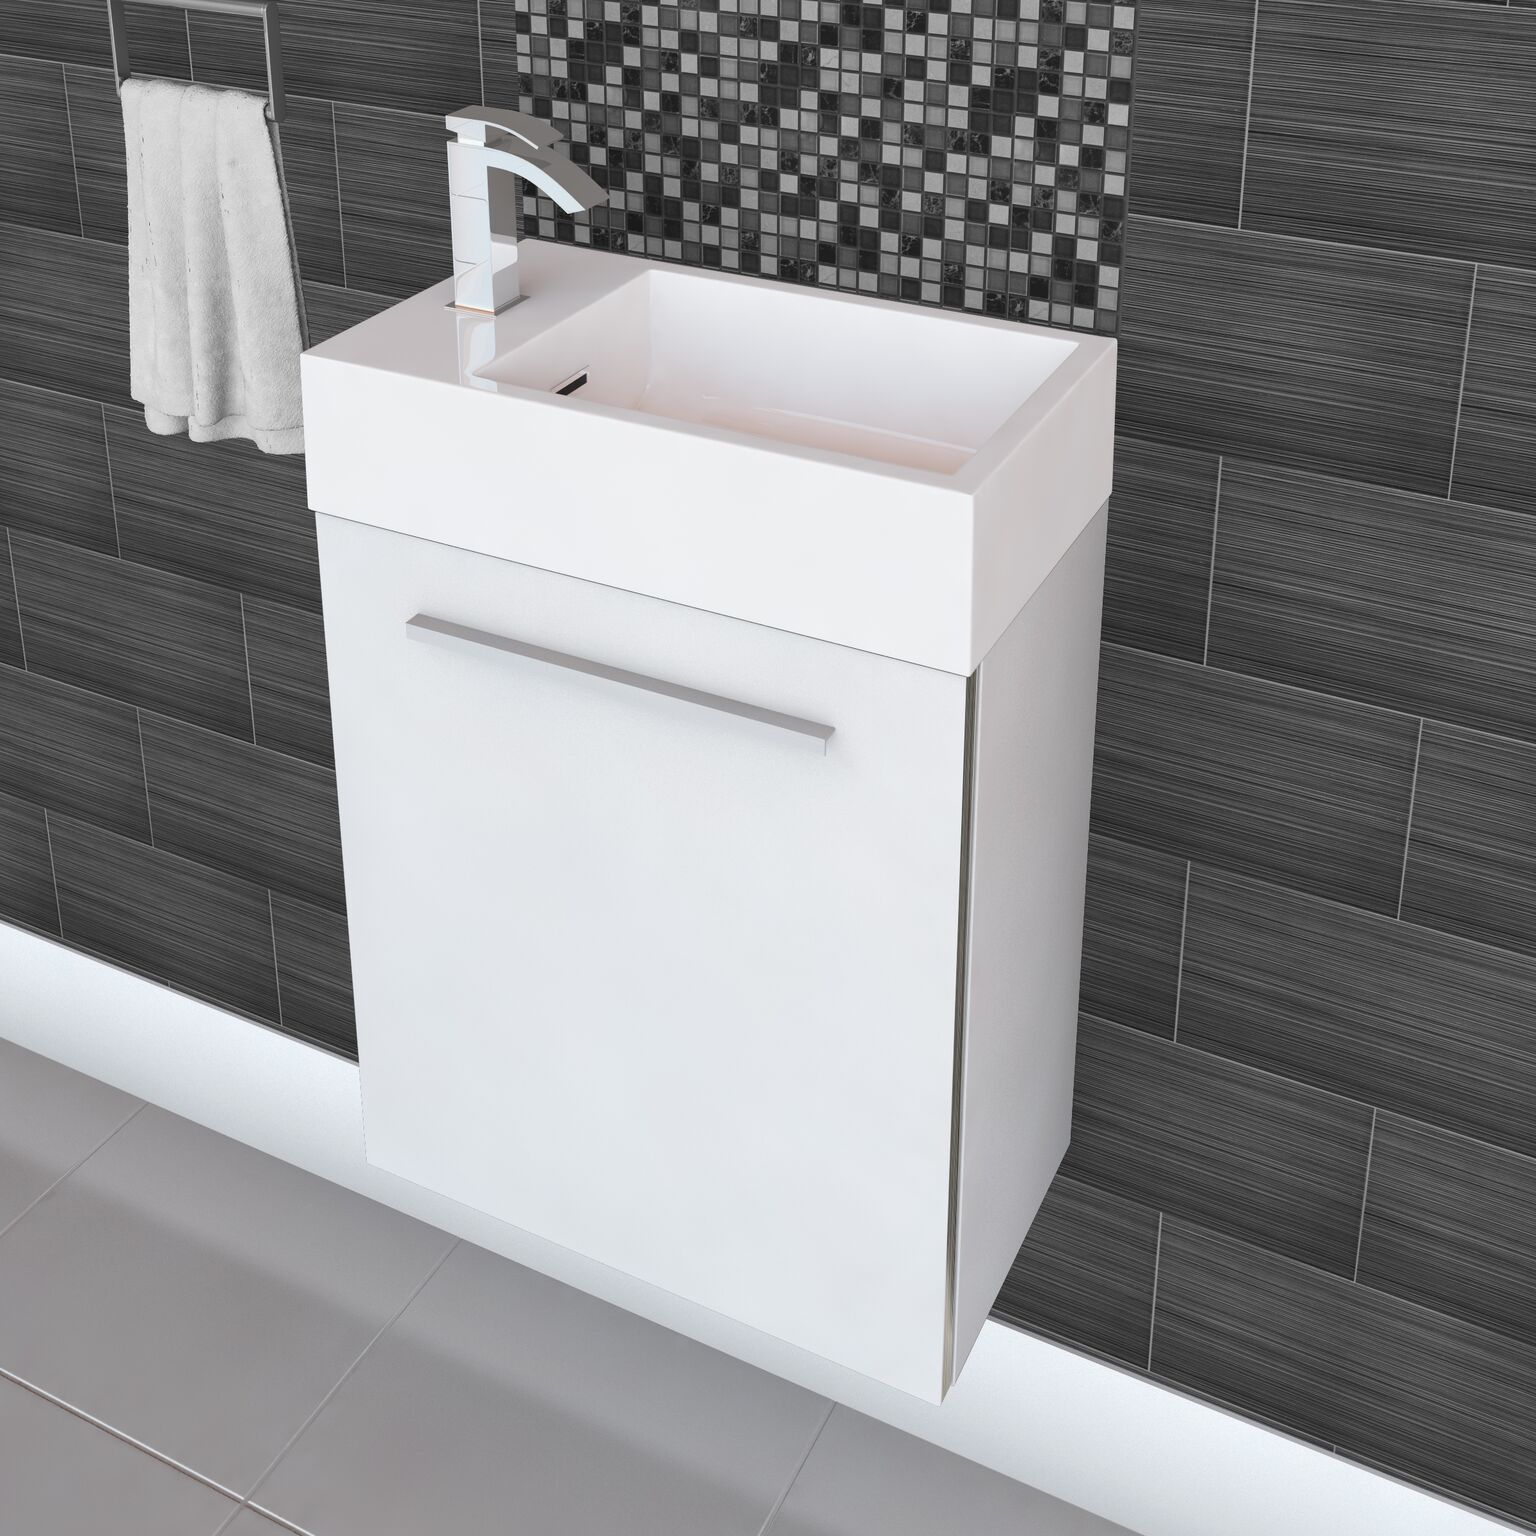 Shop Cutler Kitchen U0026 Bath Boutique 18 Inch Space Saver Vanity   Free  Shipping Today   Overstock.com   15052547